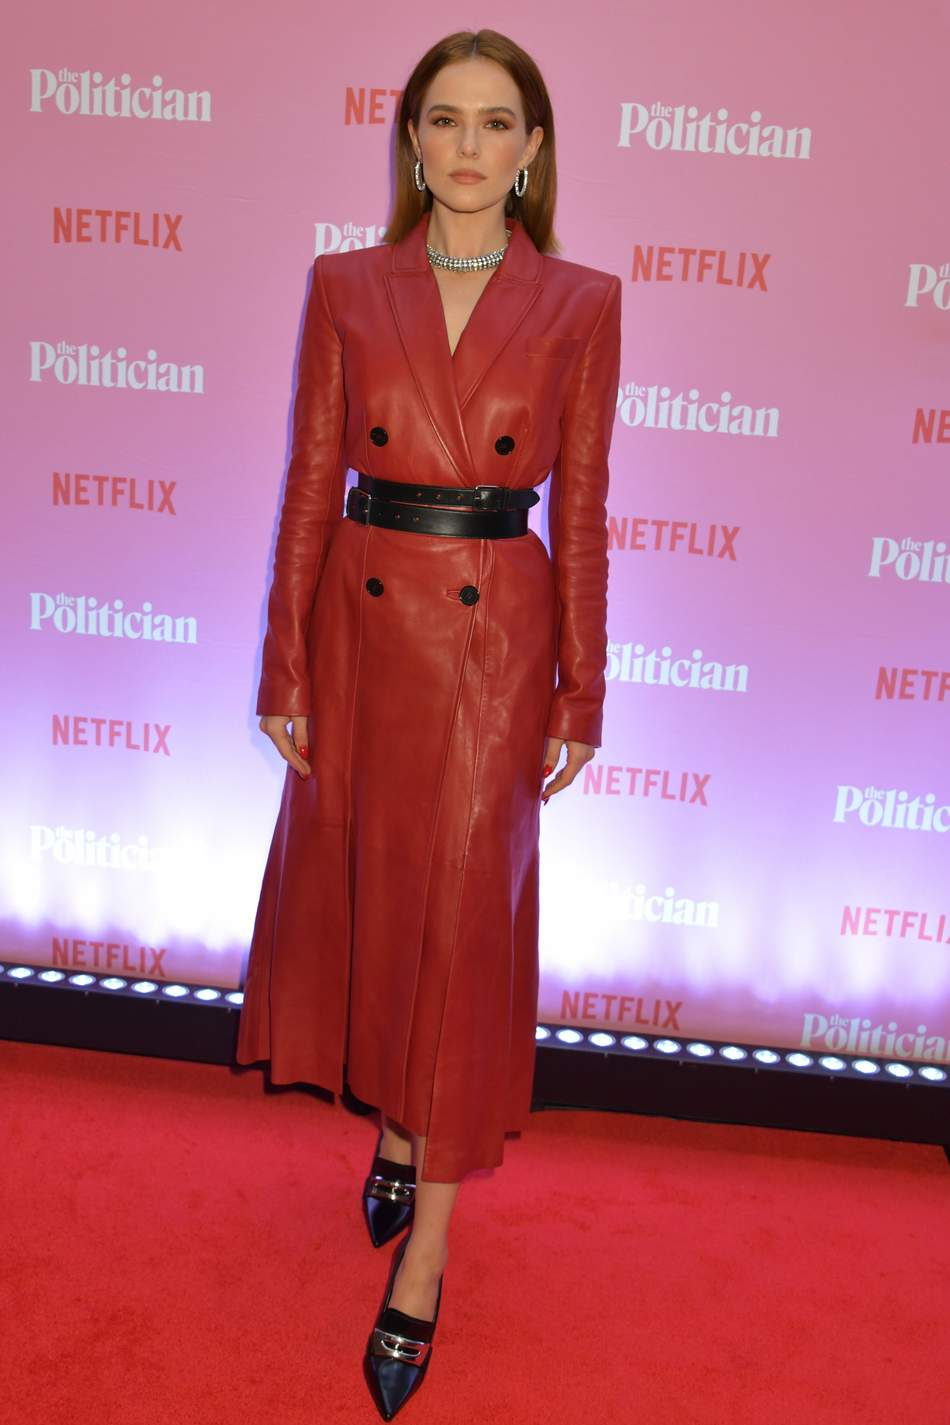 zoey-deutch-in-alexander-mcqueen-@-'the-politician'-netflix-london-screening